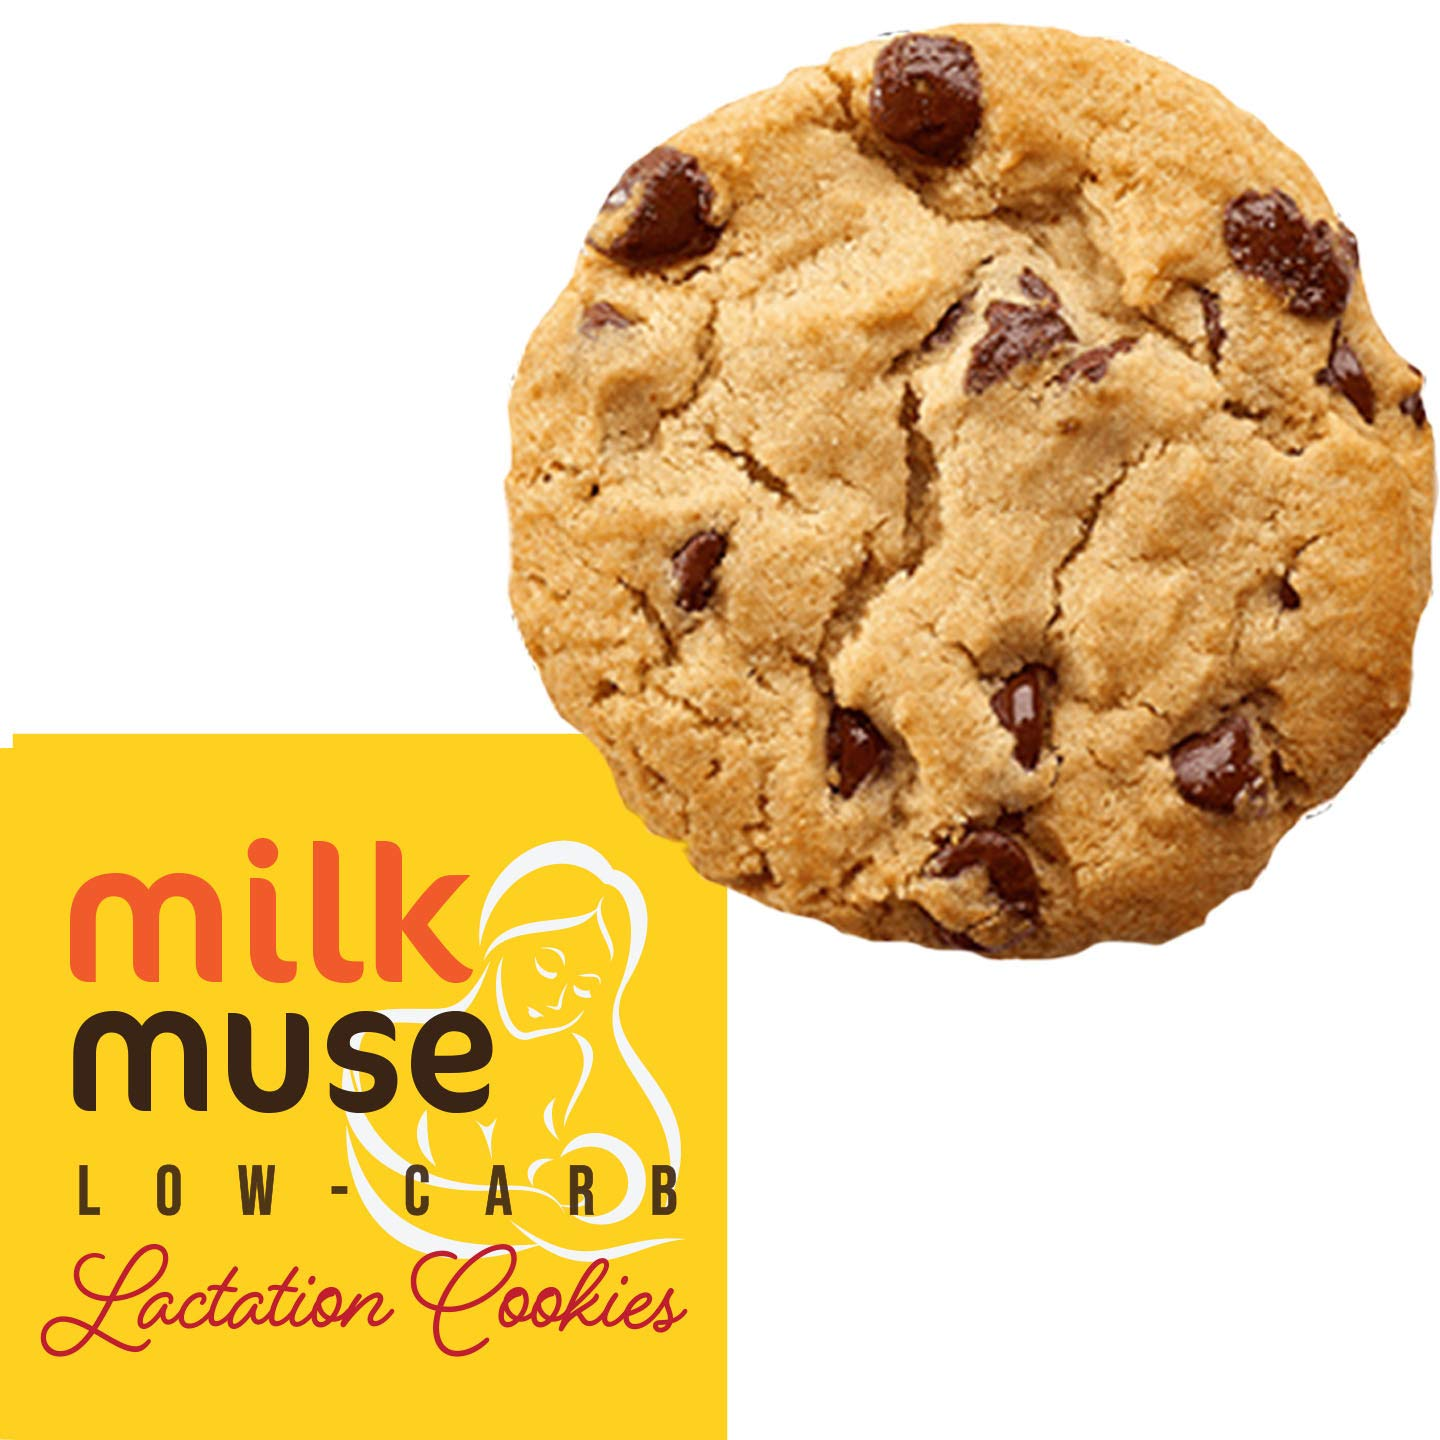 Low Carb Lactation Cookies MilkMuse - No Sugar, Gluten Free & Keto Snacks to Increase Milk Supply | with Almonds, Coconut, Brewer's Yeast & Fennel - Box with 6 packs, 12 Cookies (Chocolate Chip) by MilkMuse